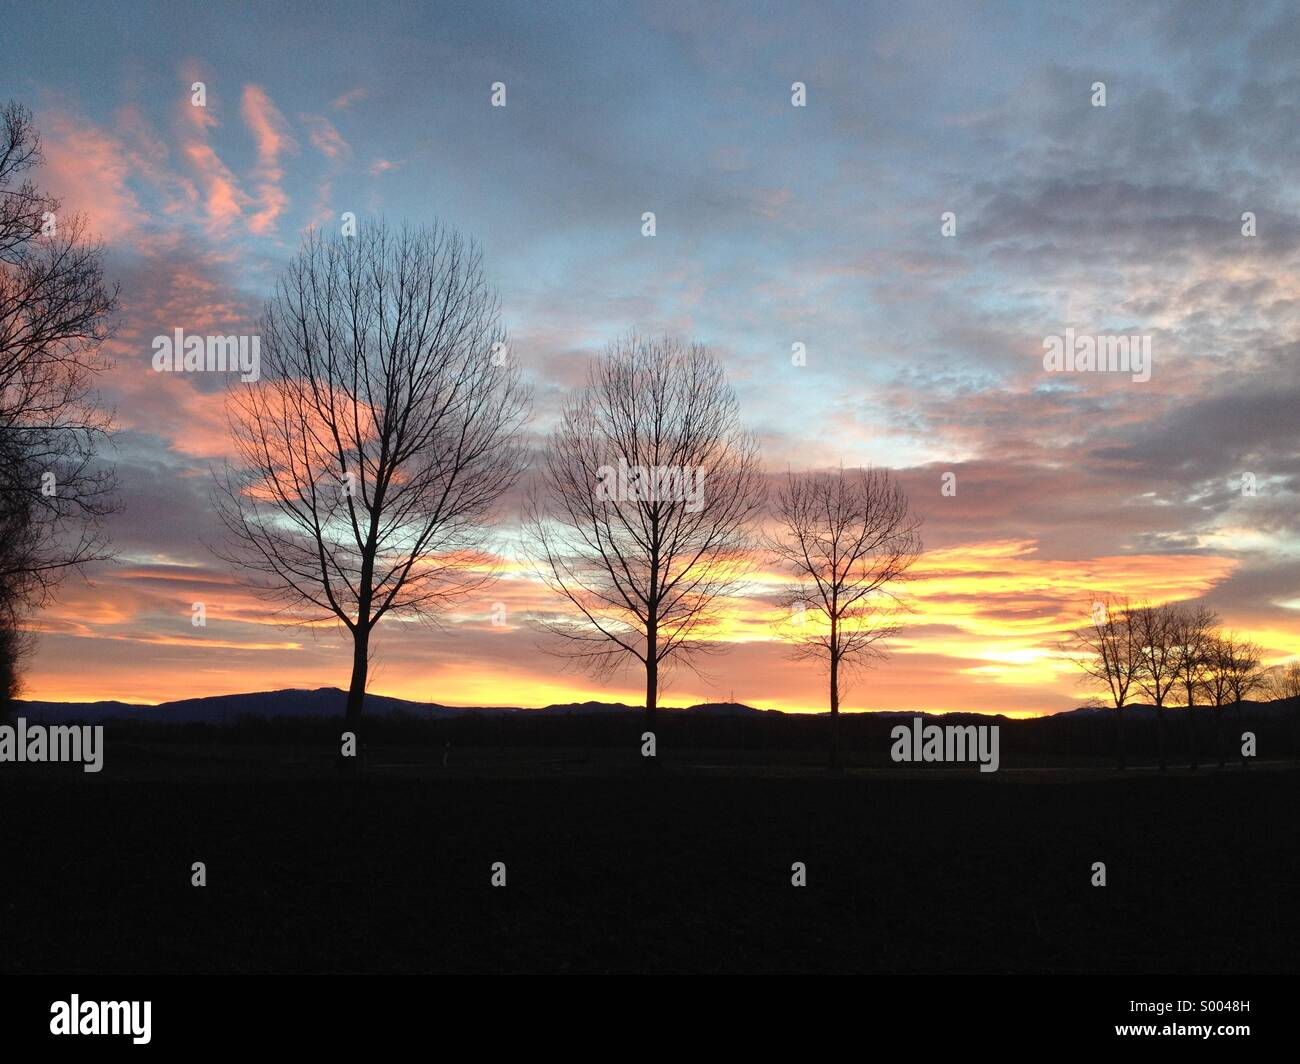 Sunrise in South-West Germany - Stock Image